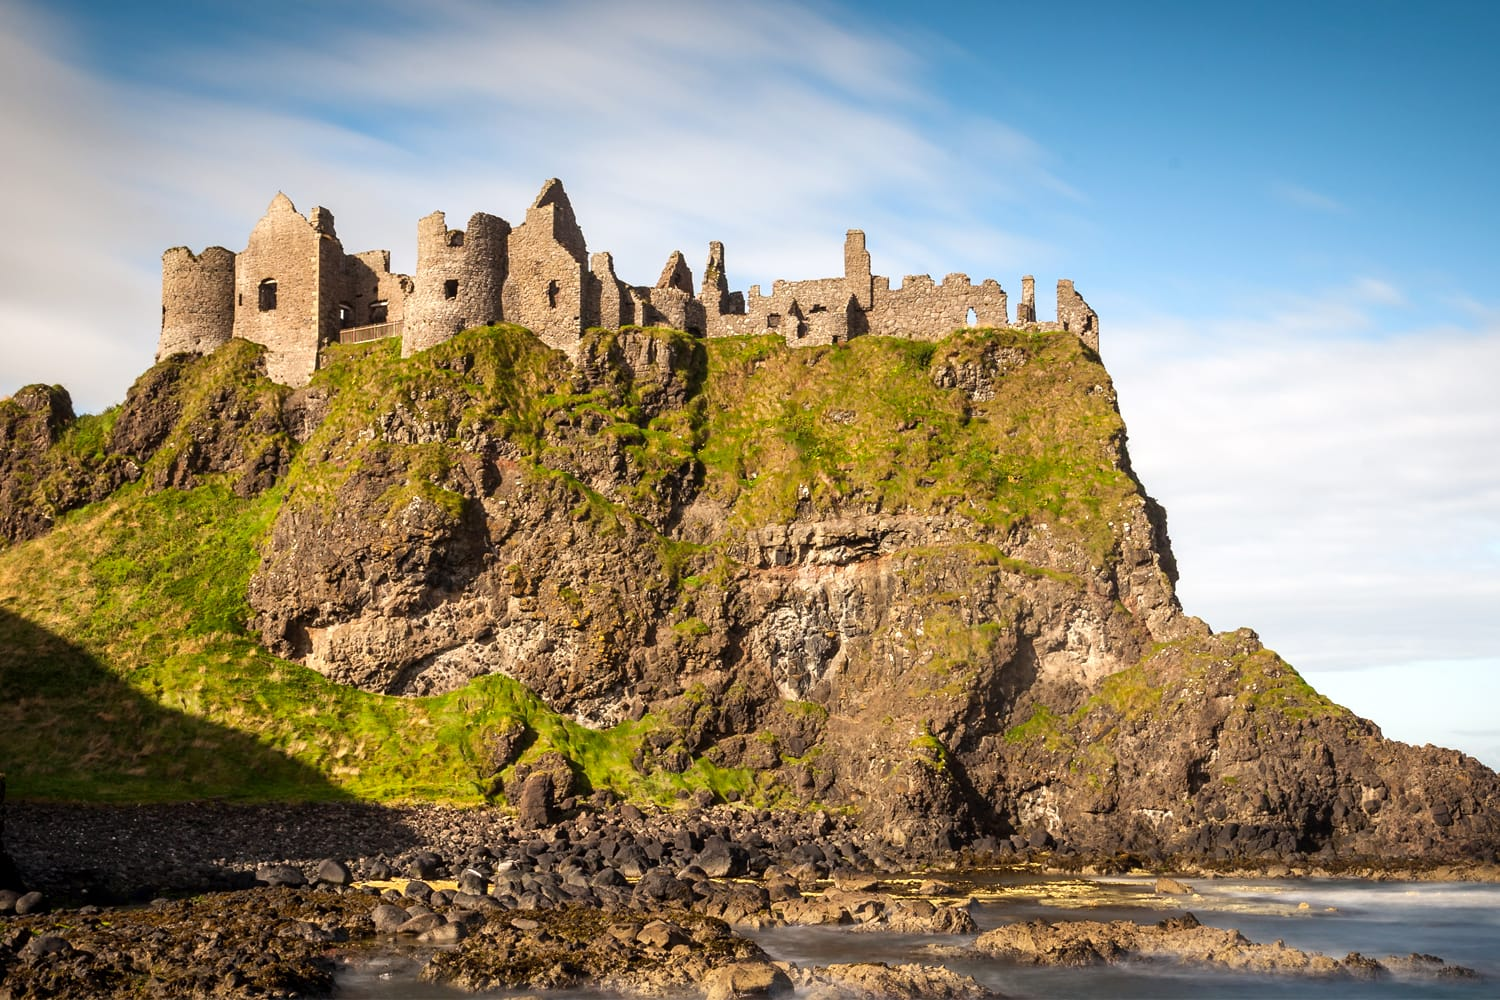 Dunluce Castle in Ireland